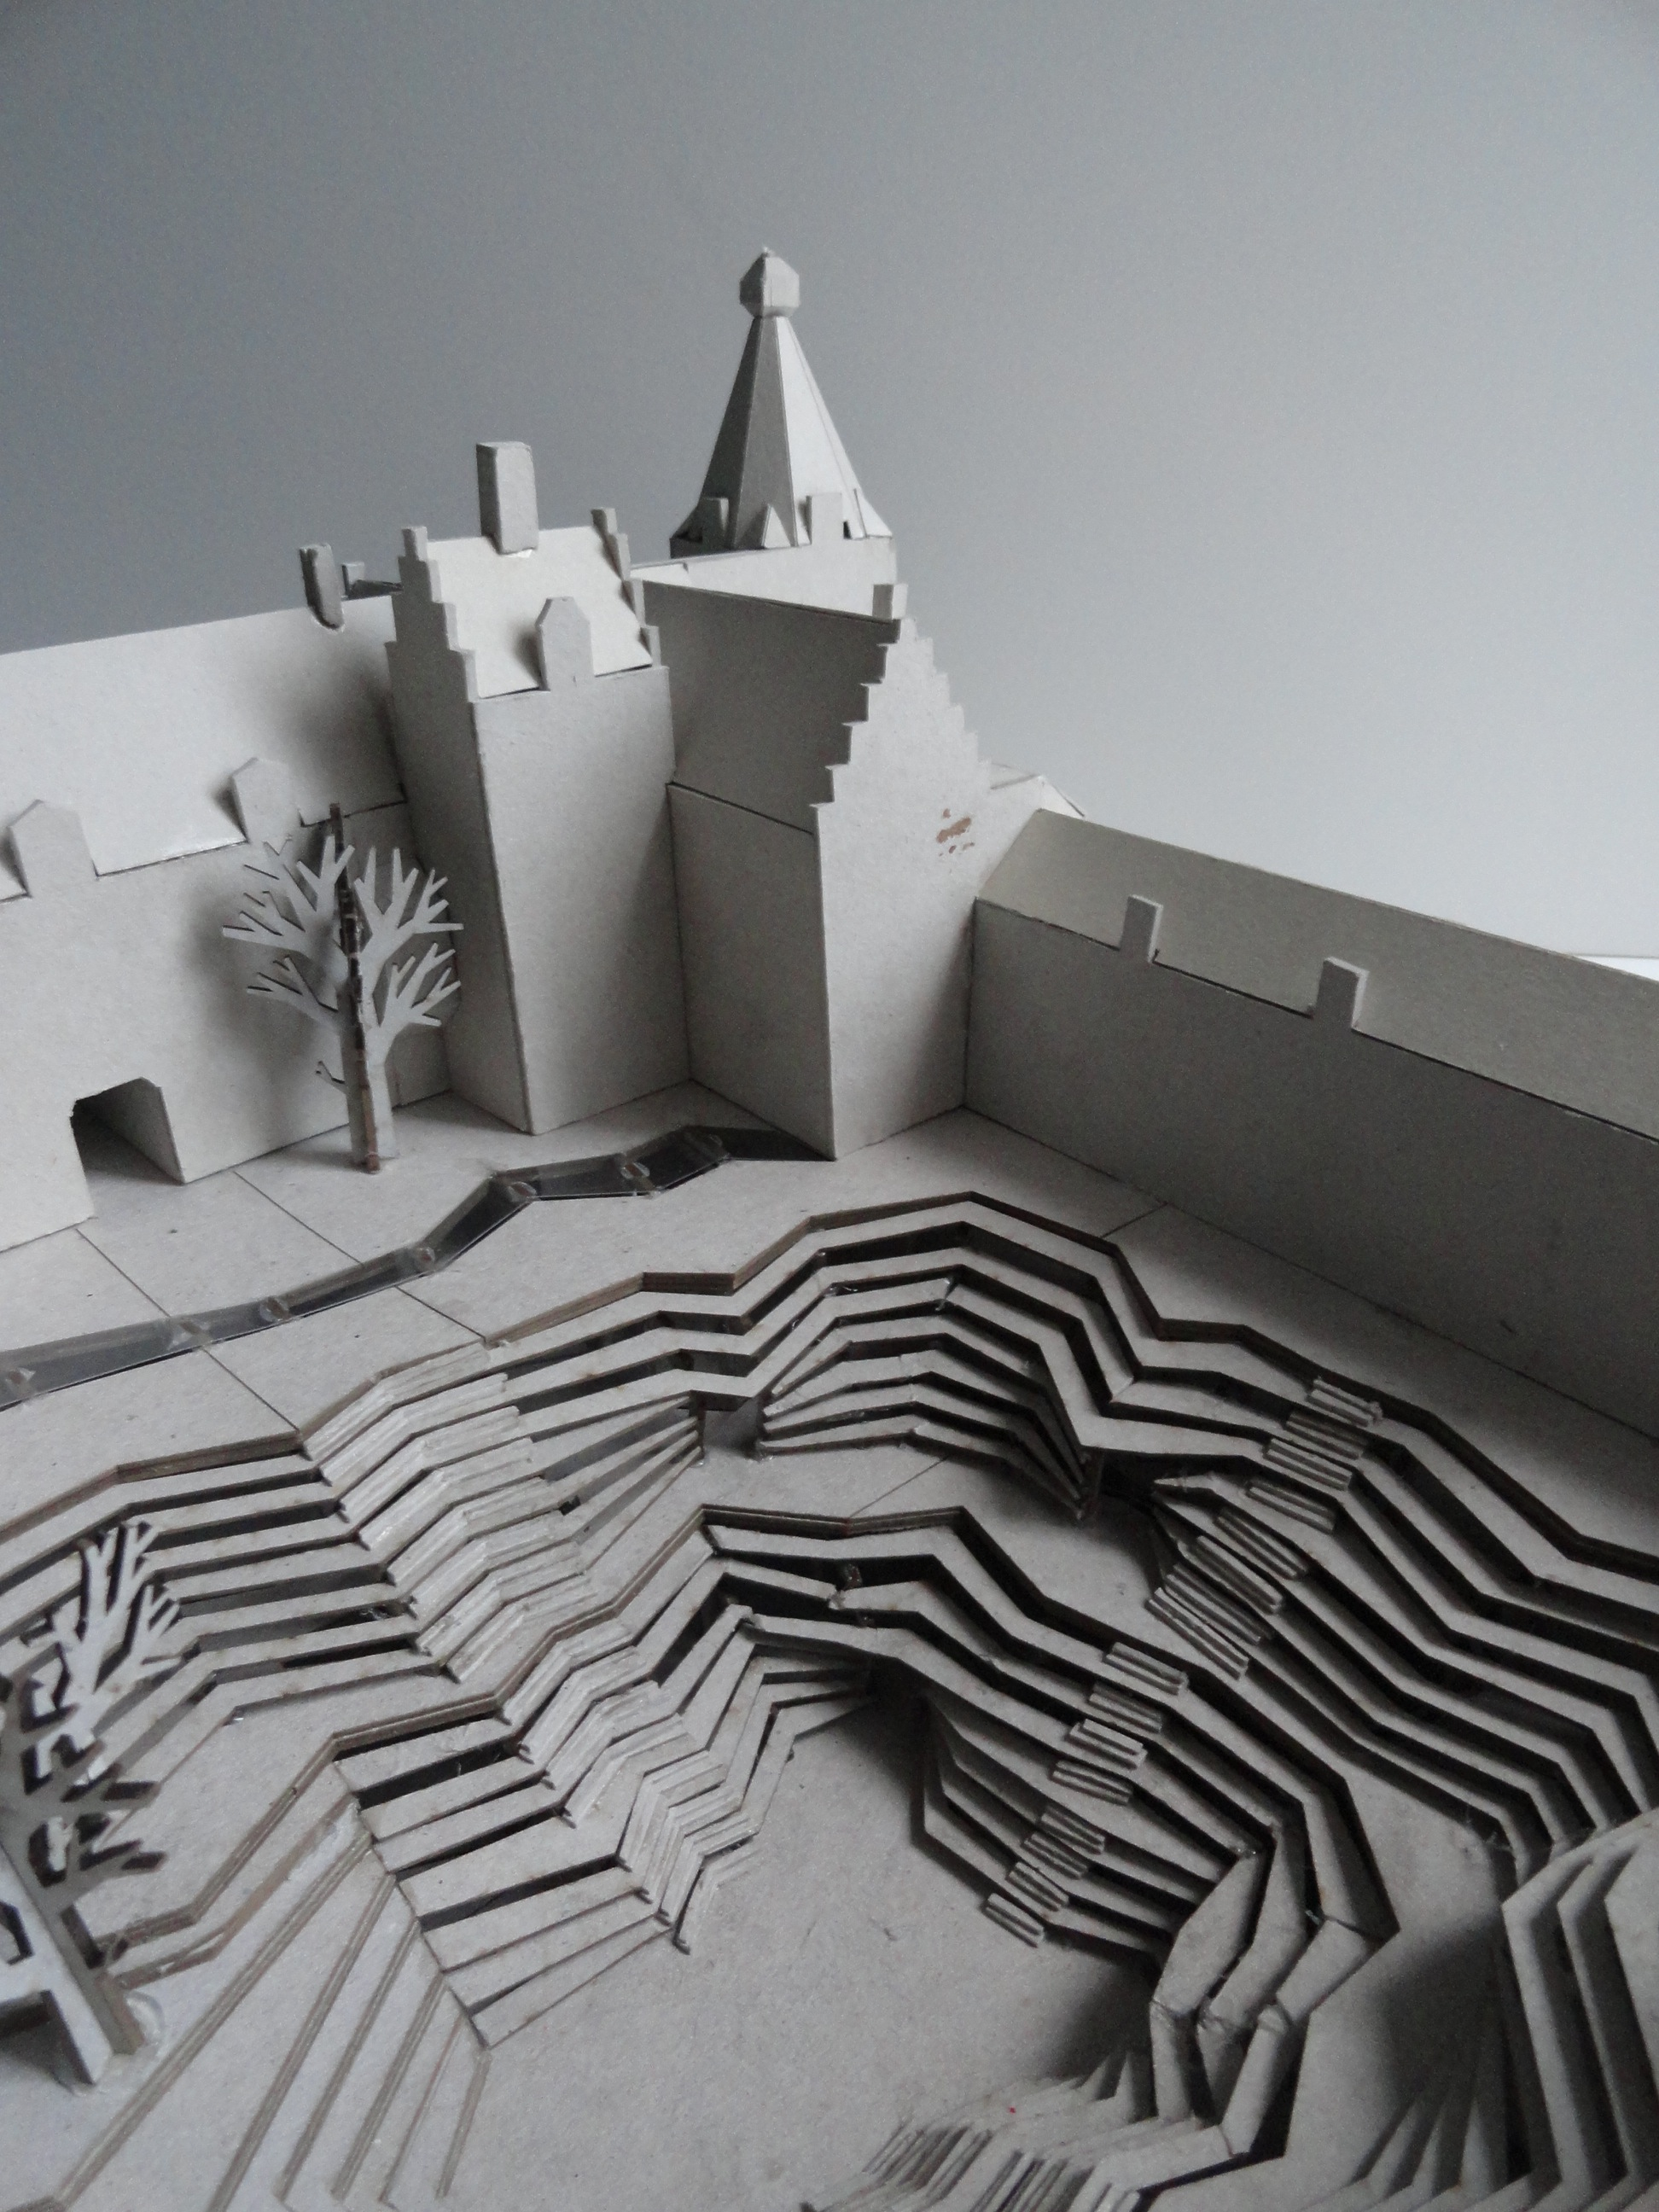 Model making with a laser cutter